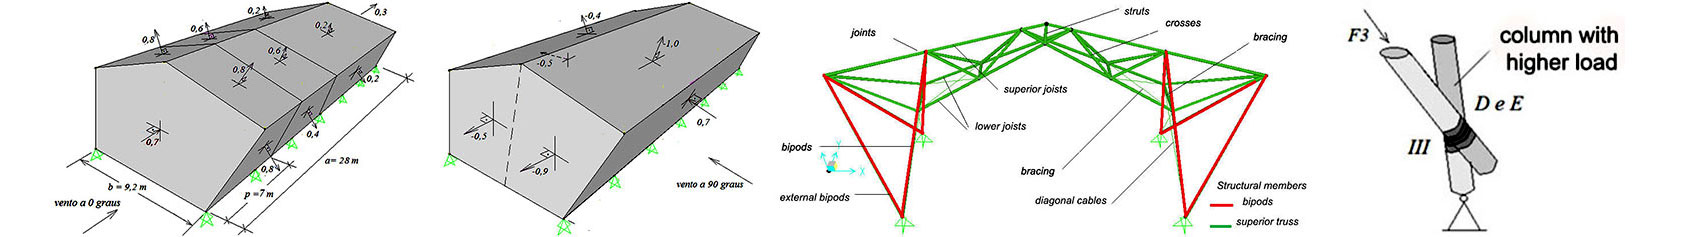 self-supporting-bamboo-space-structure-with-flexible-joints.jpg